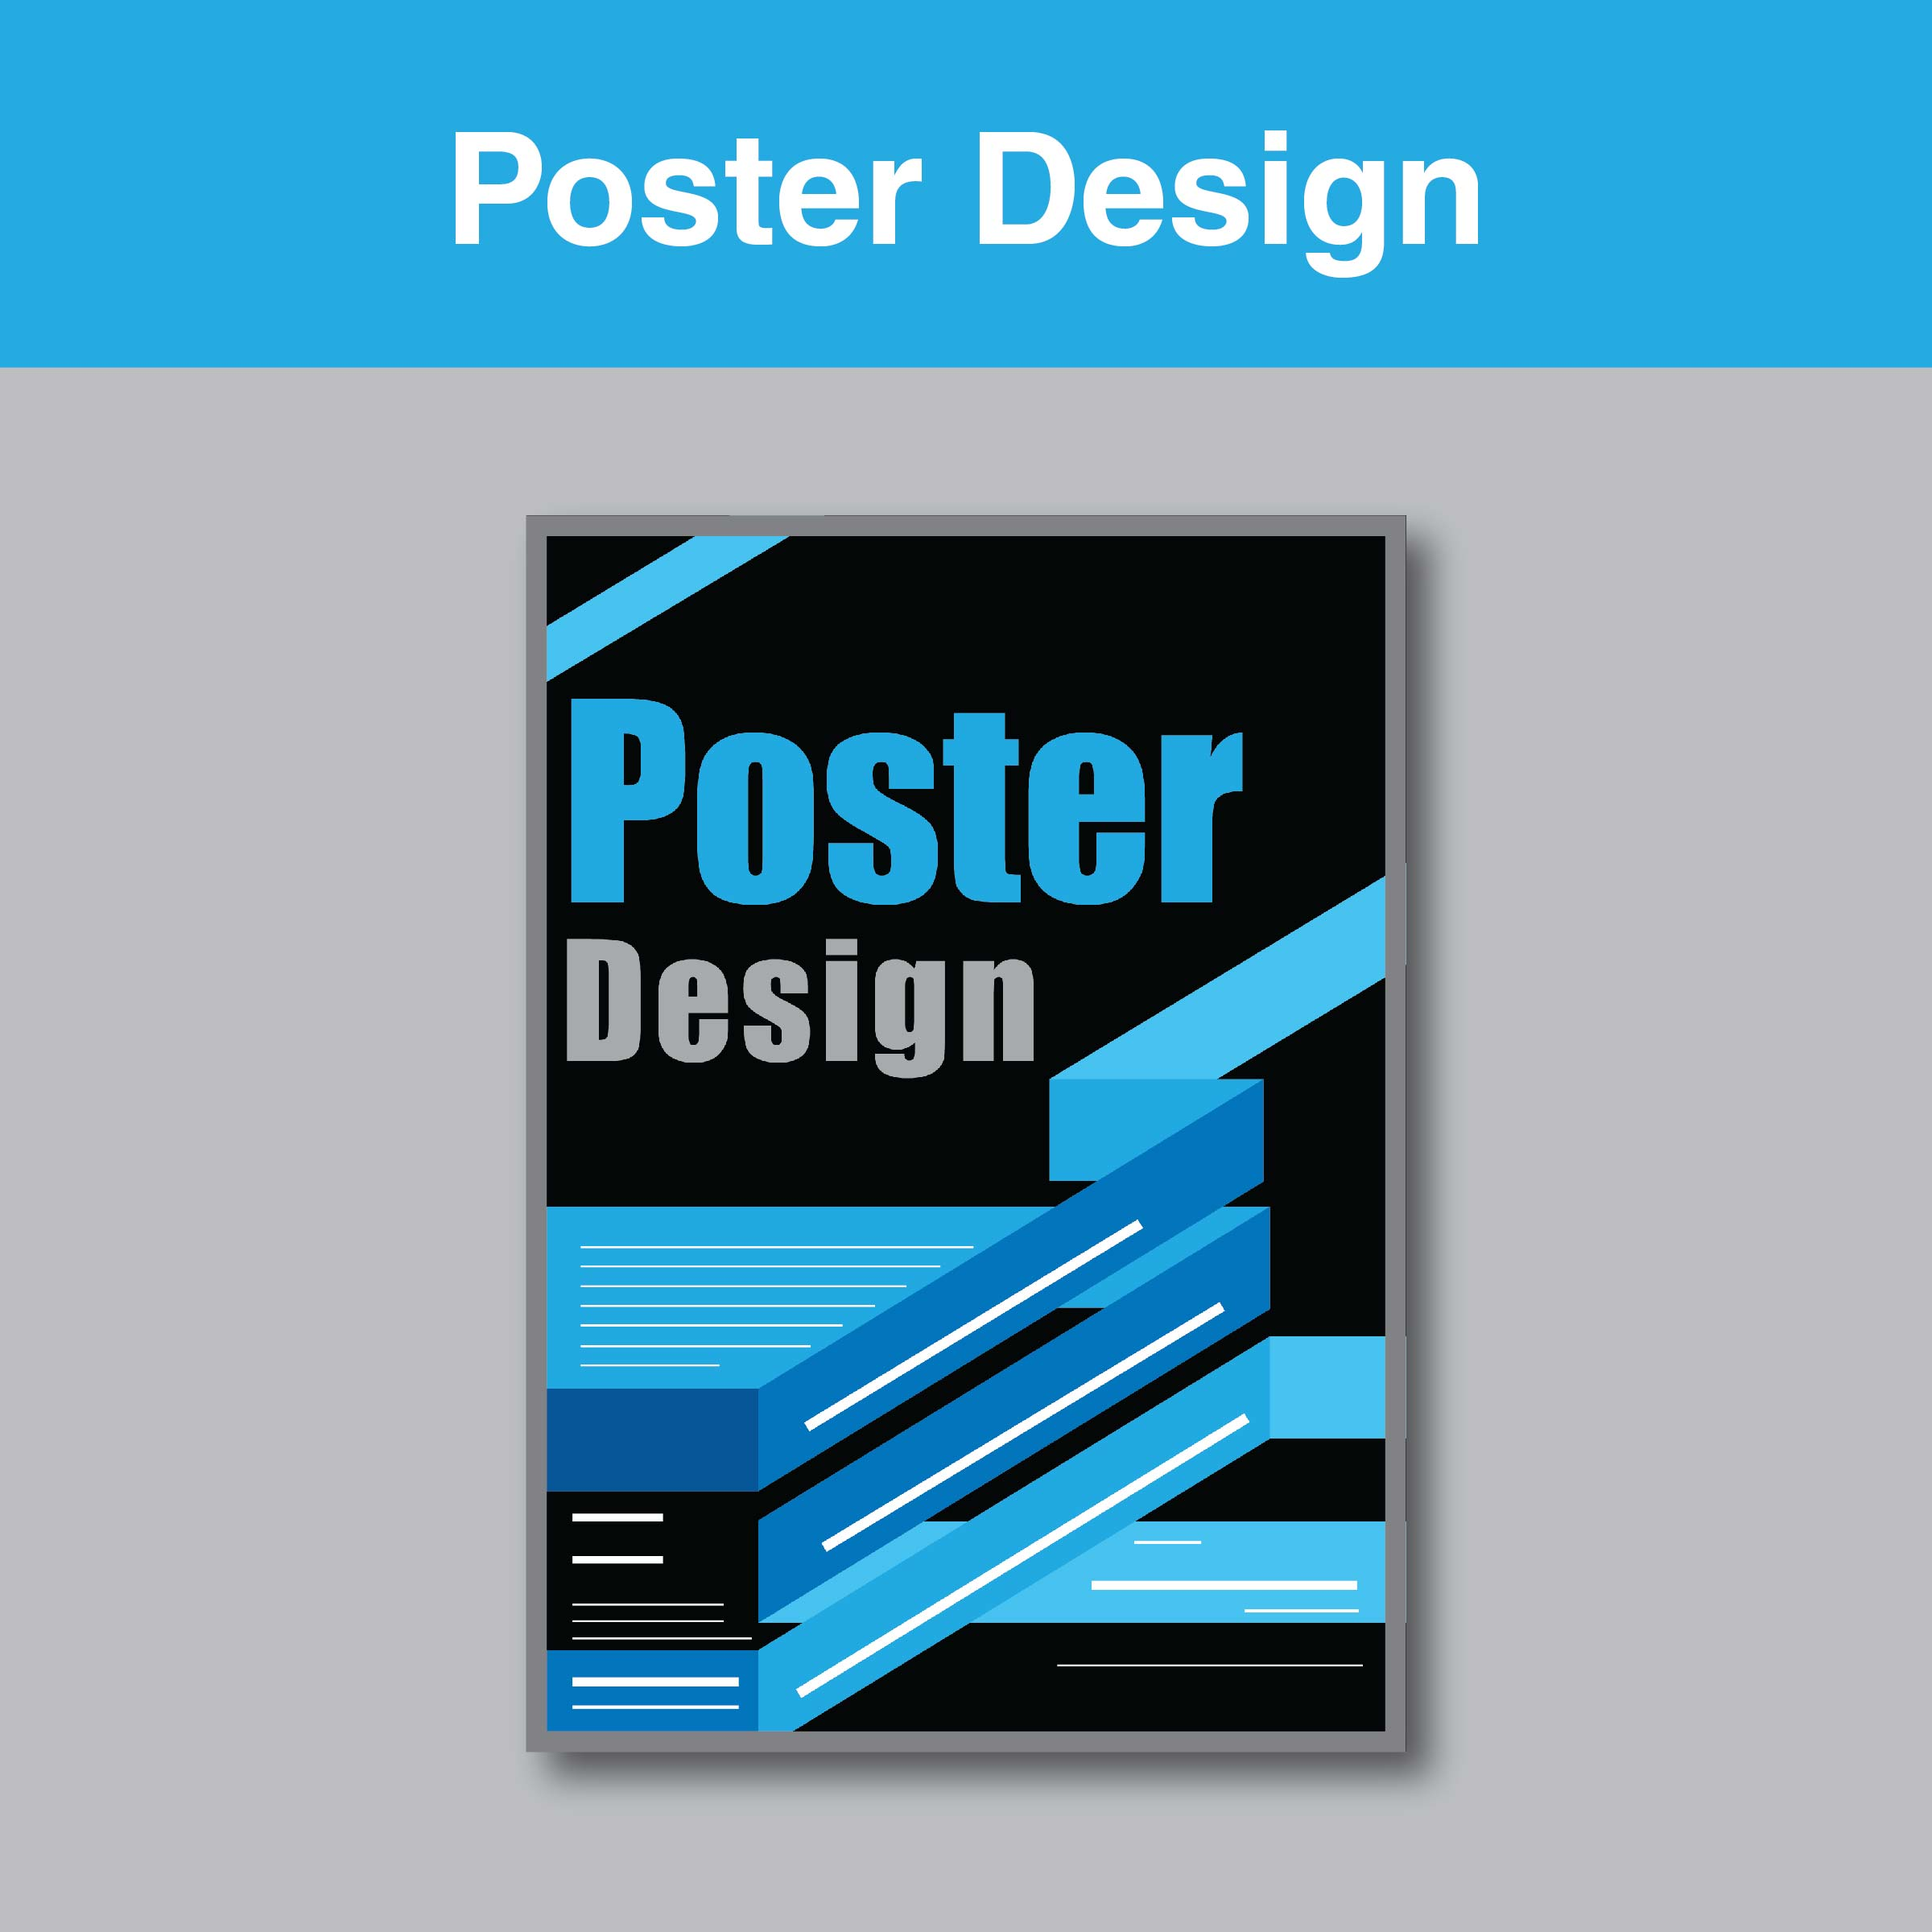 Poster design service - Connect On Facebook